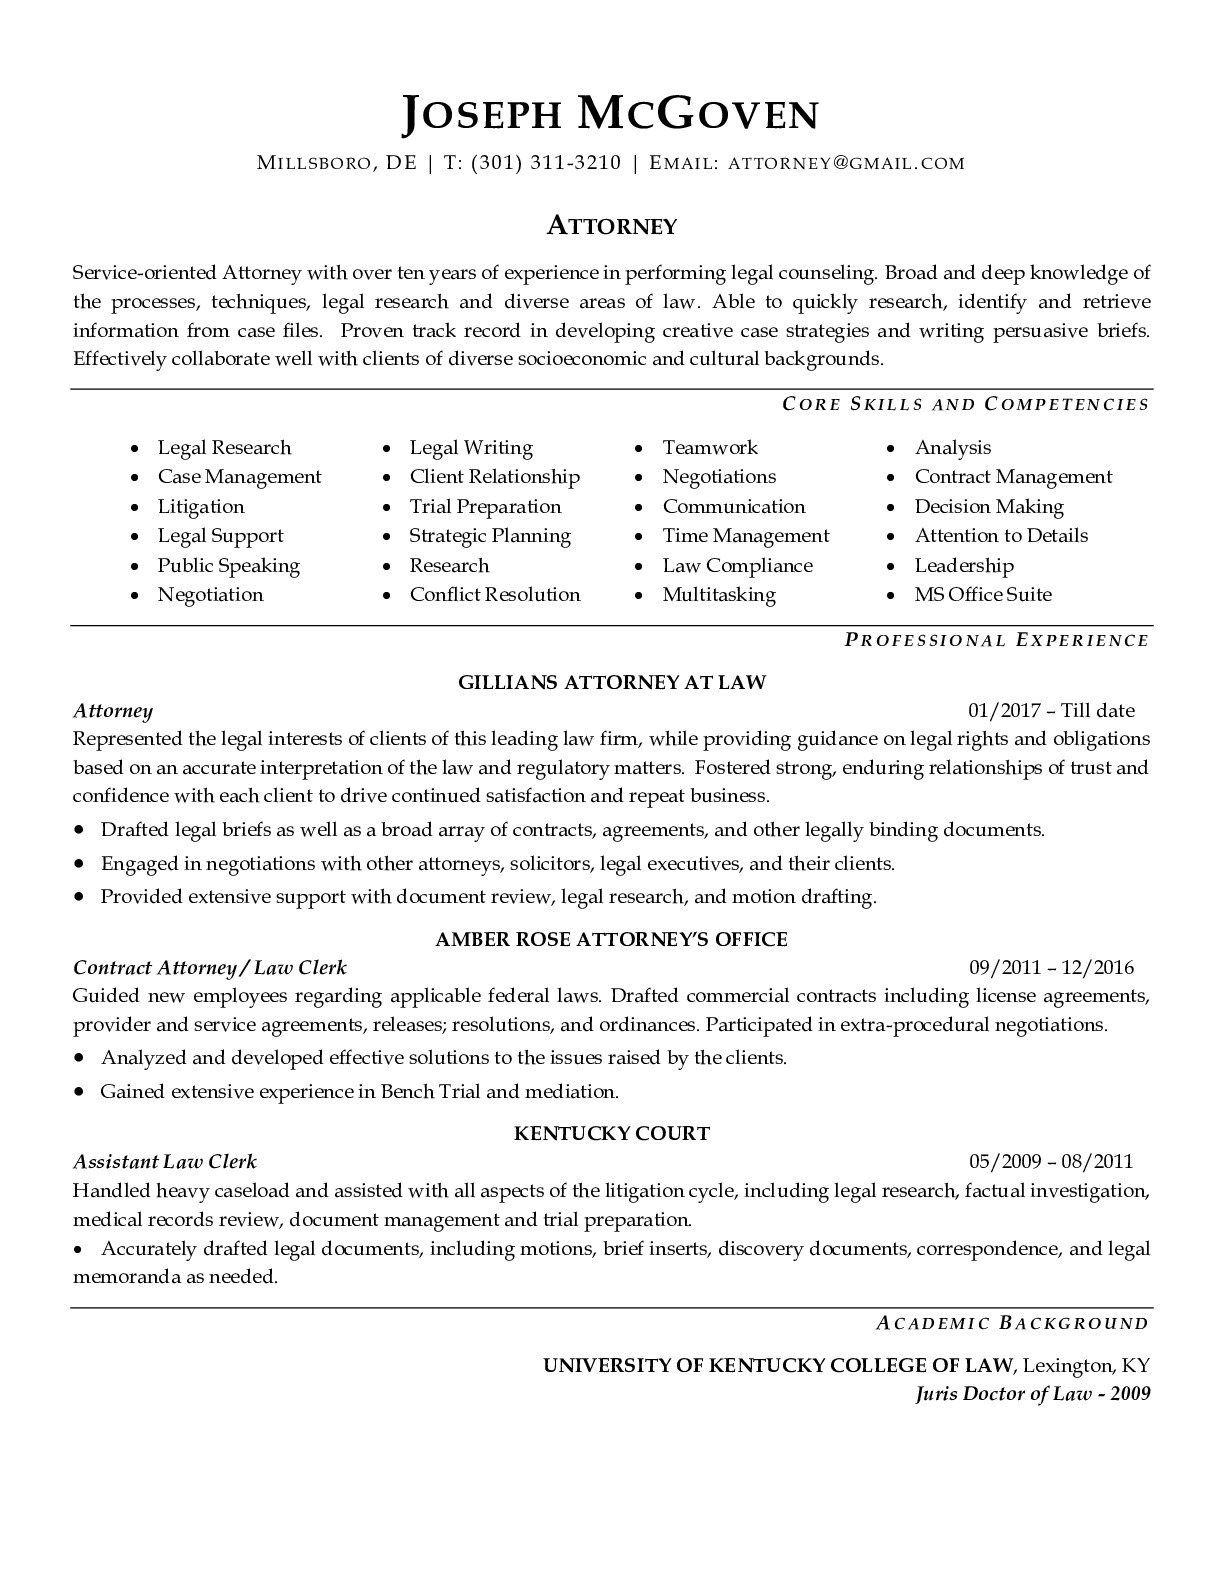 Resume Example for Attorney